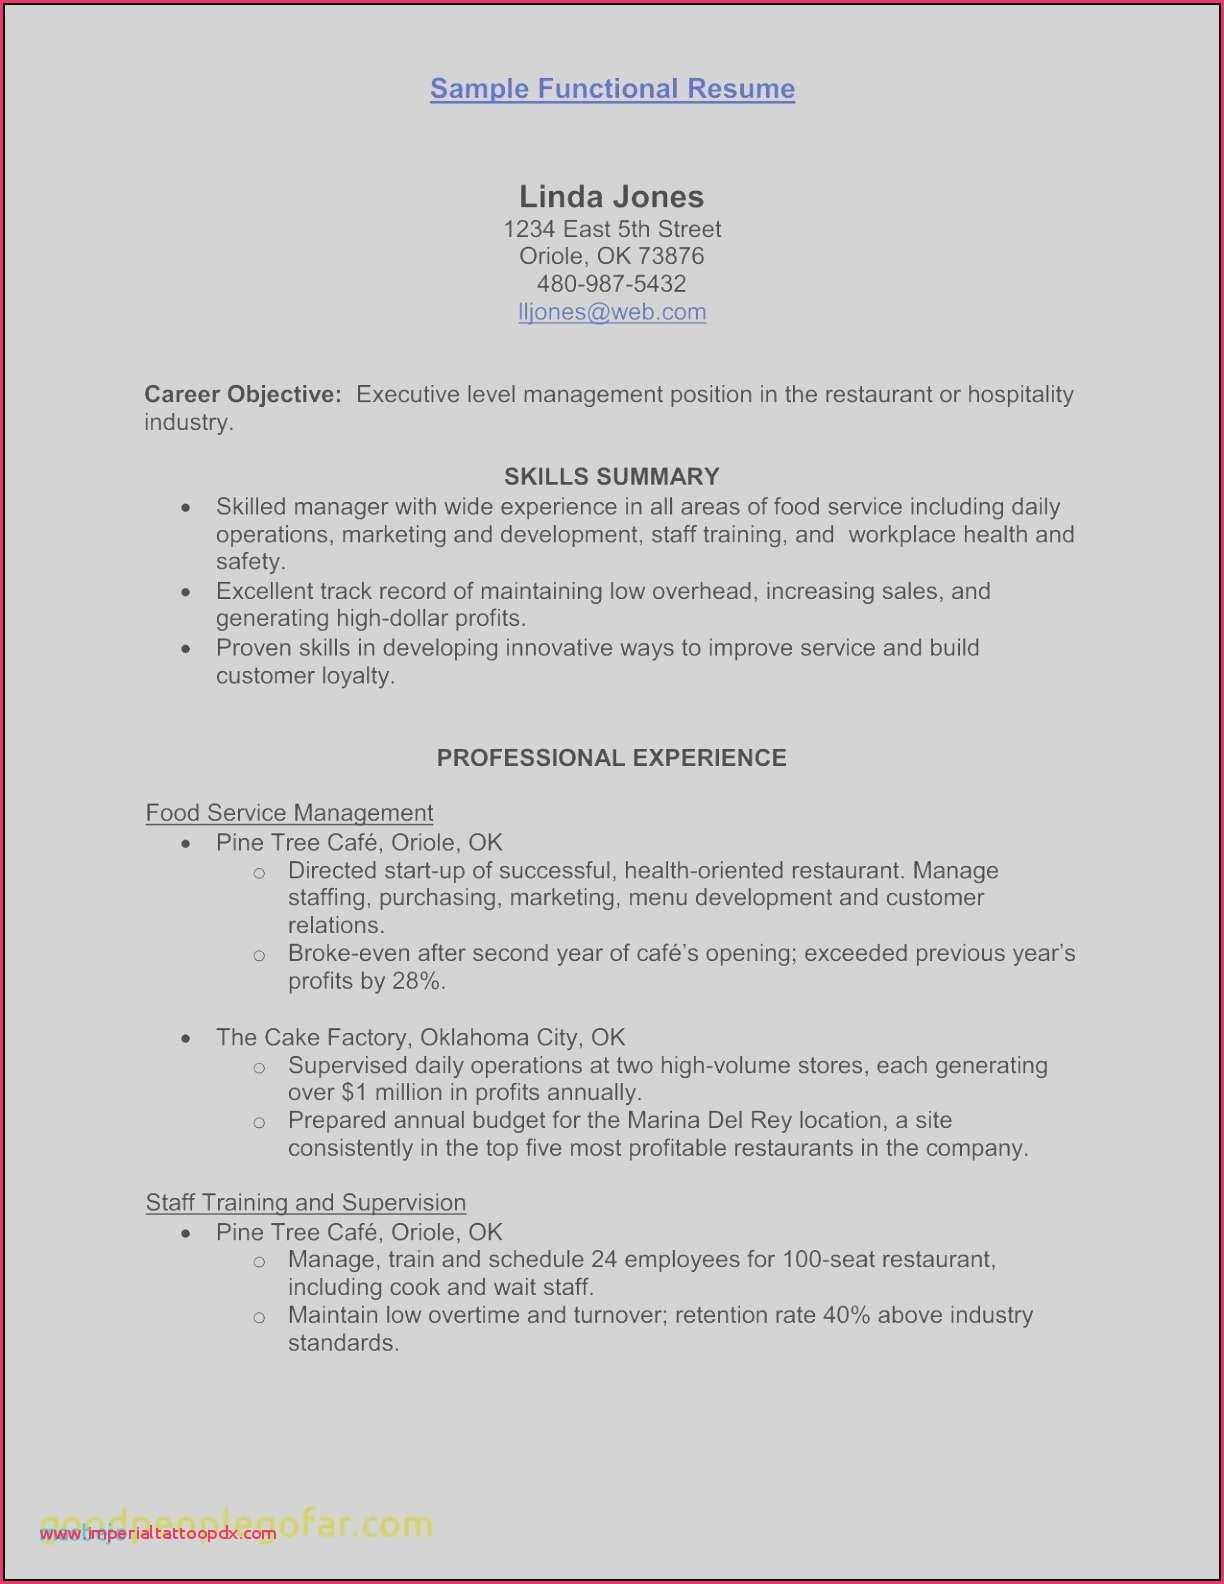 resume examples service industry example-Patient Care Tech Resume New Tech Resume Best Great Resume Examples Awesome Fresh Resume 0d 3-f